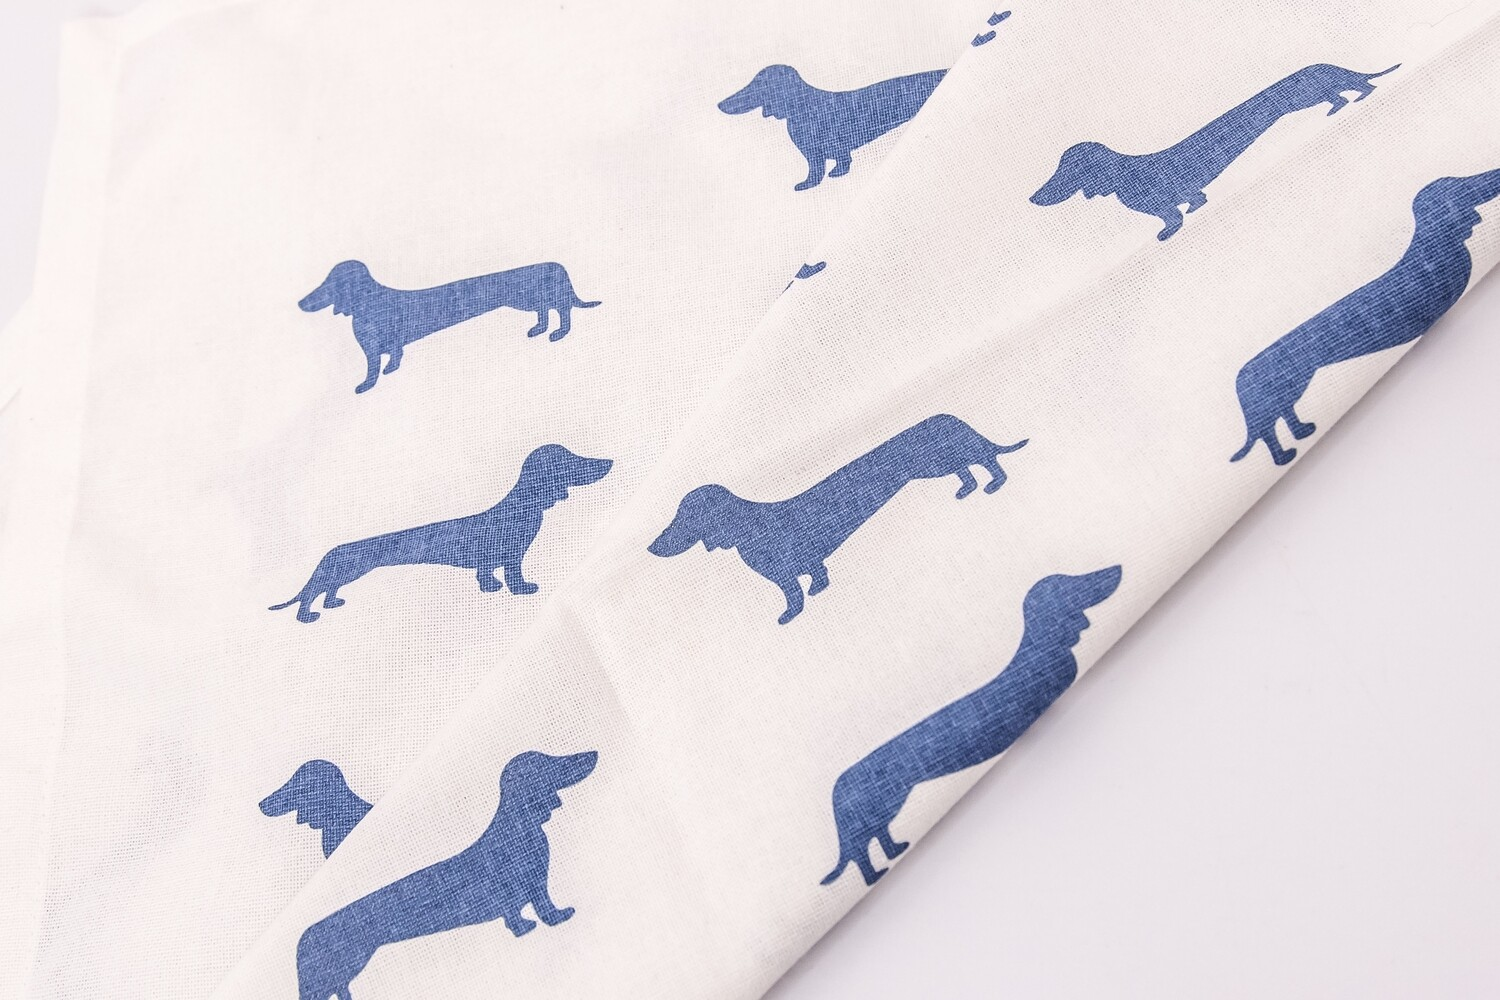 Dachshund Dish/Tea Towel - Blue dogs